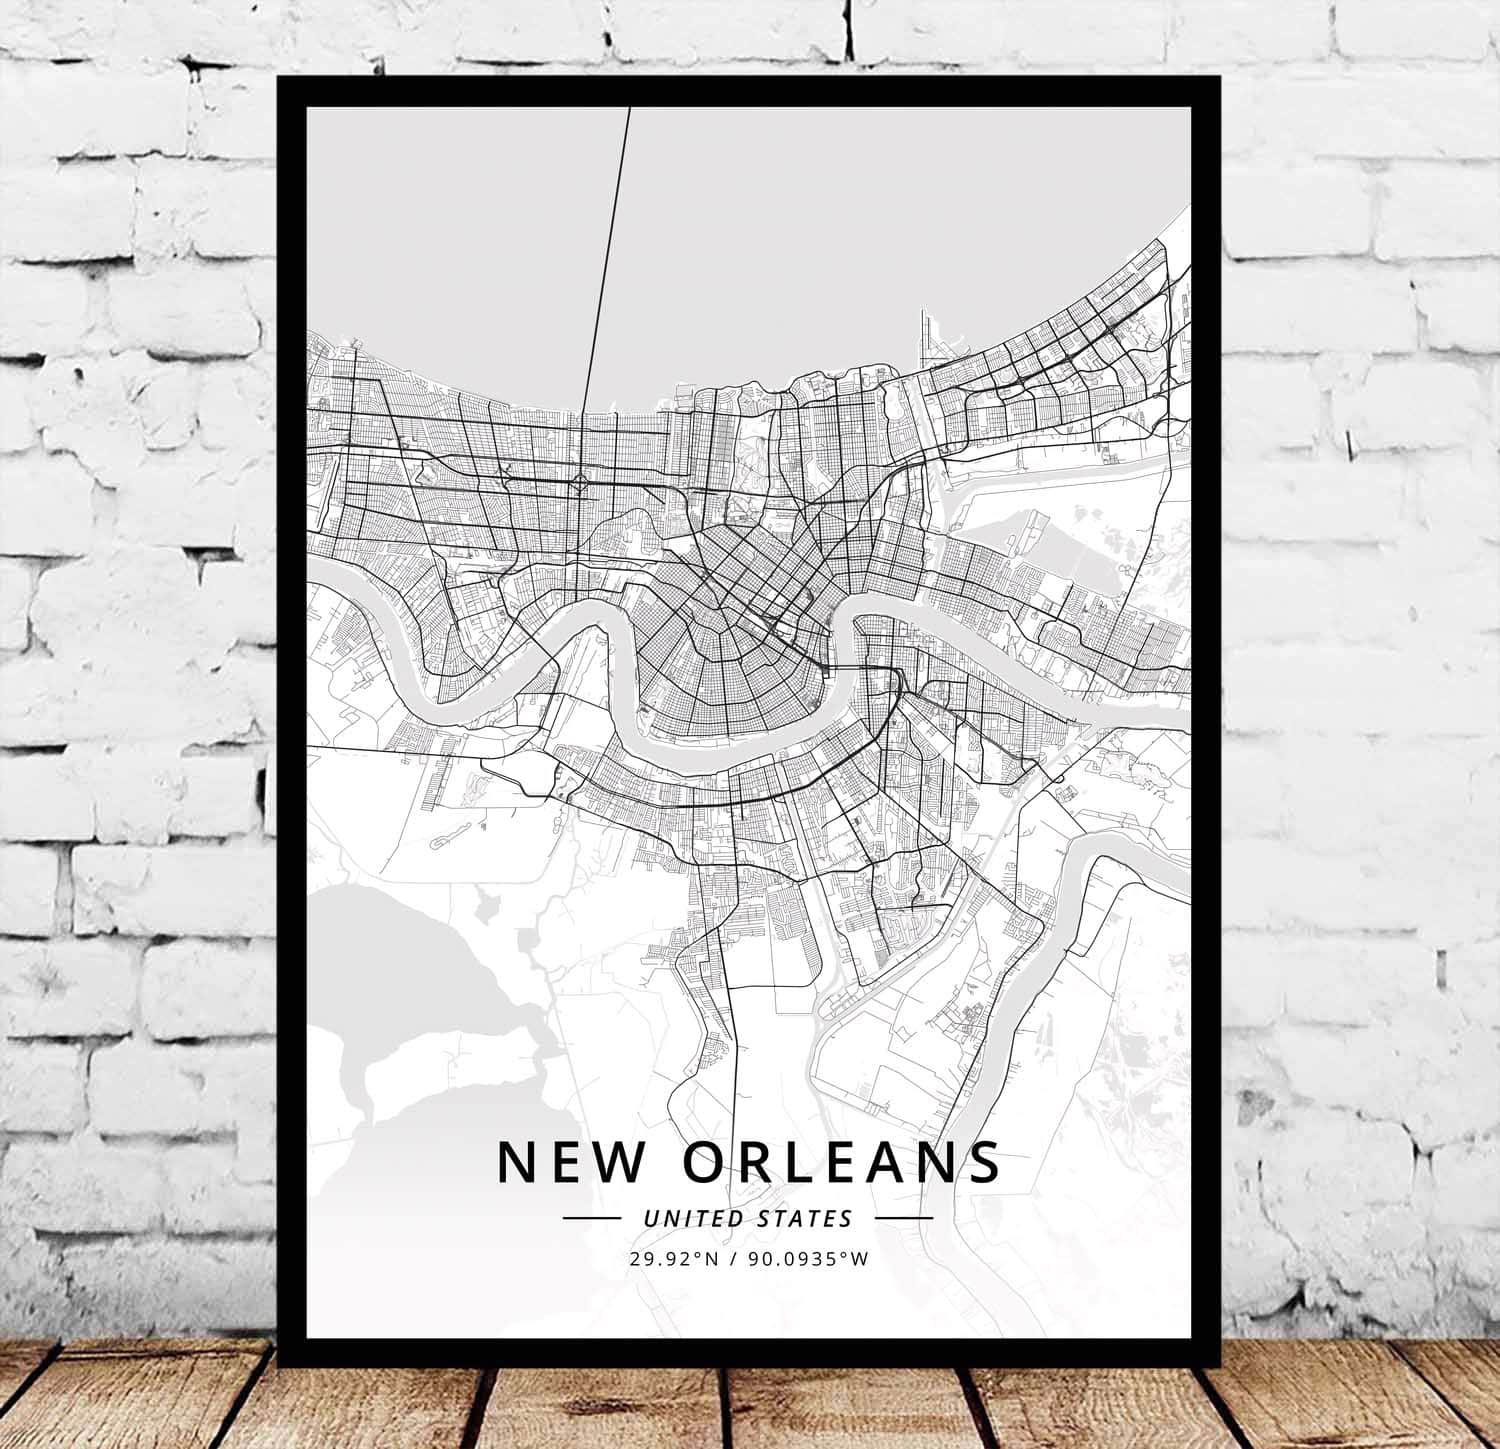 New Orleans LA Louisiana USA United States of America Map Poster image